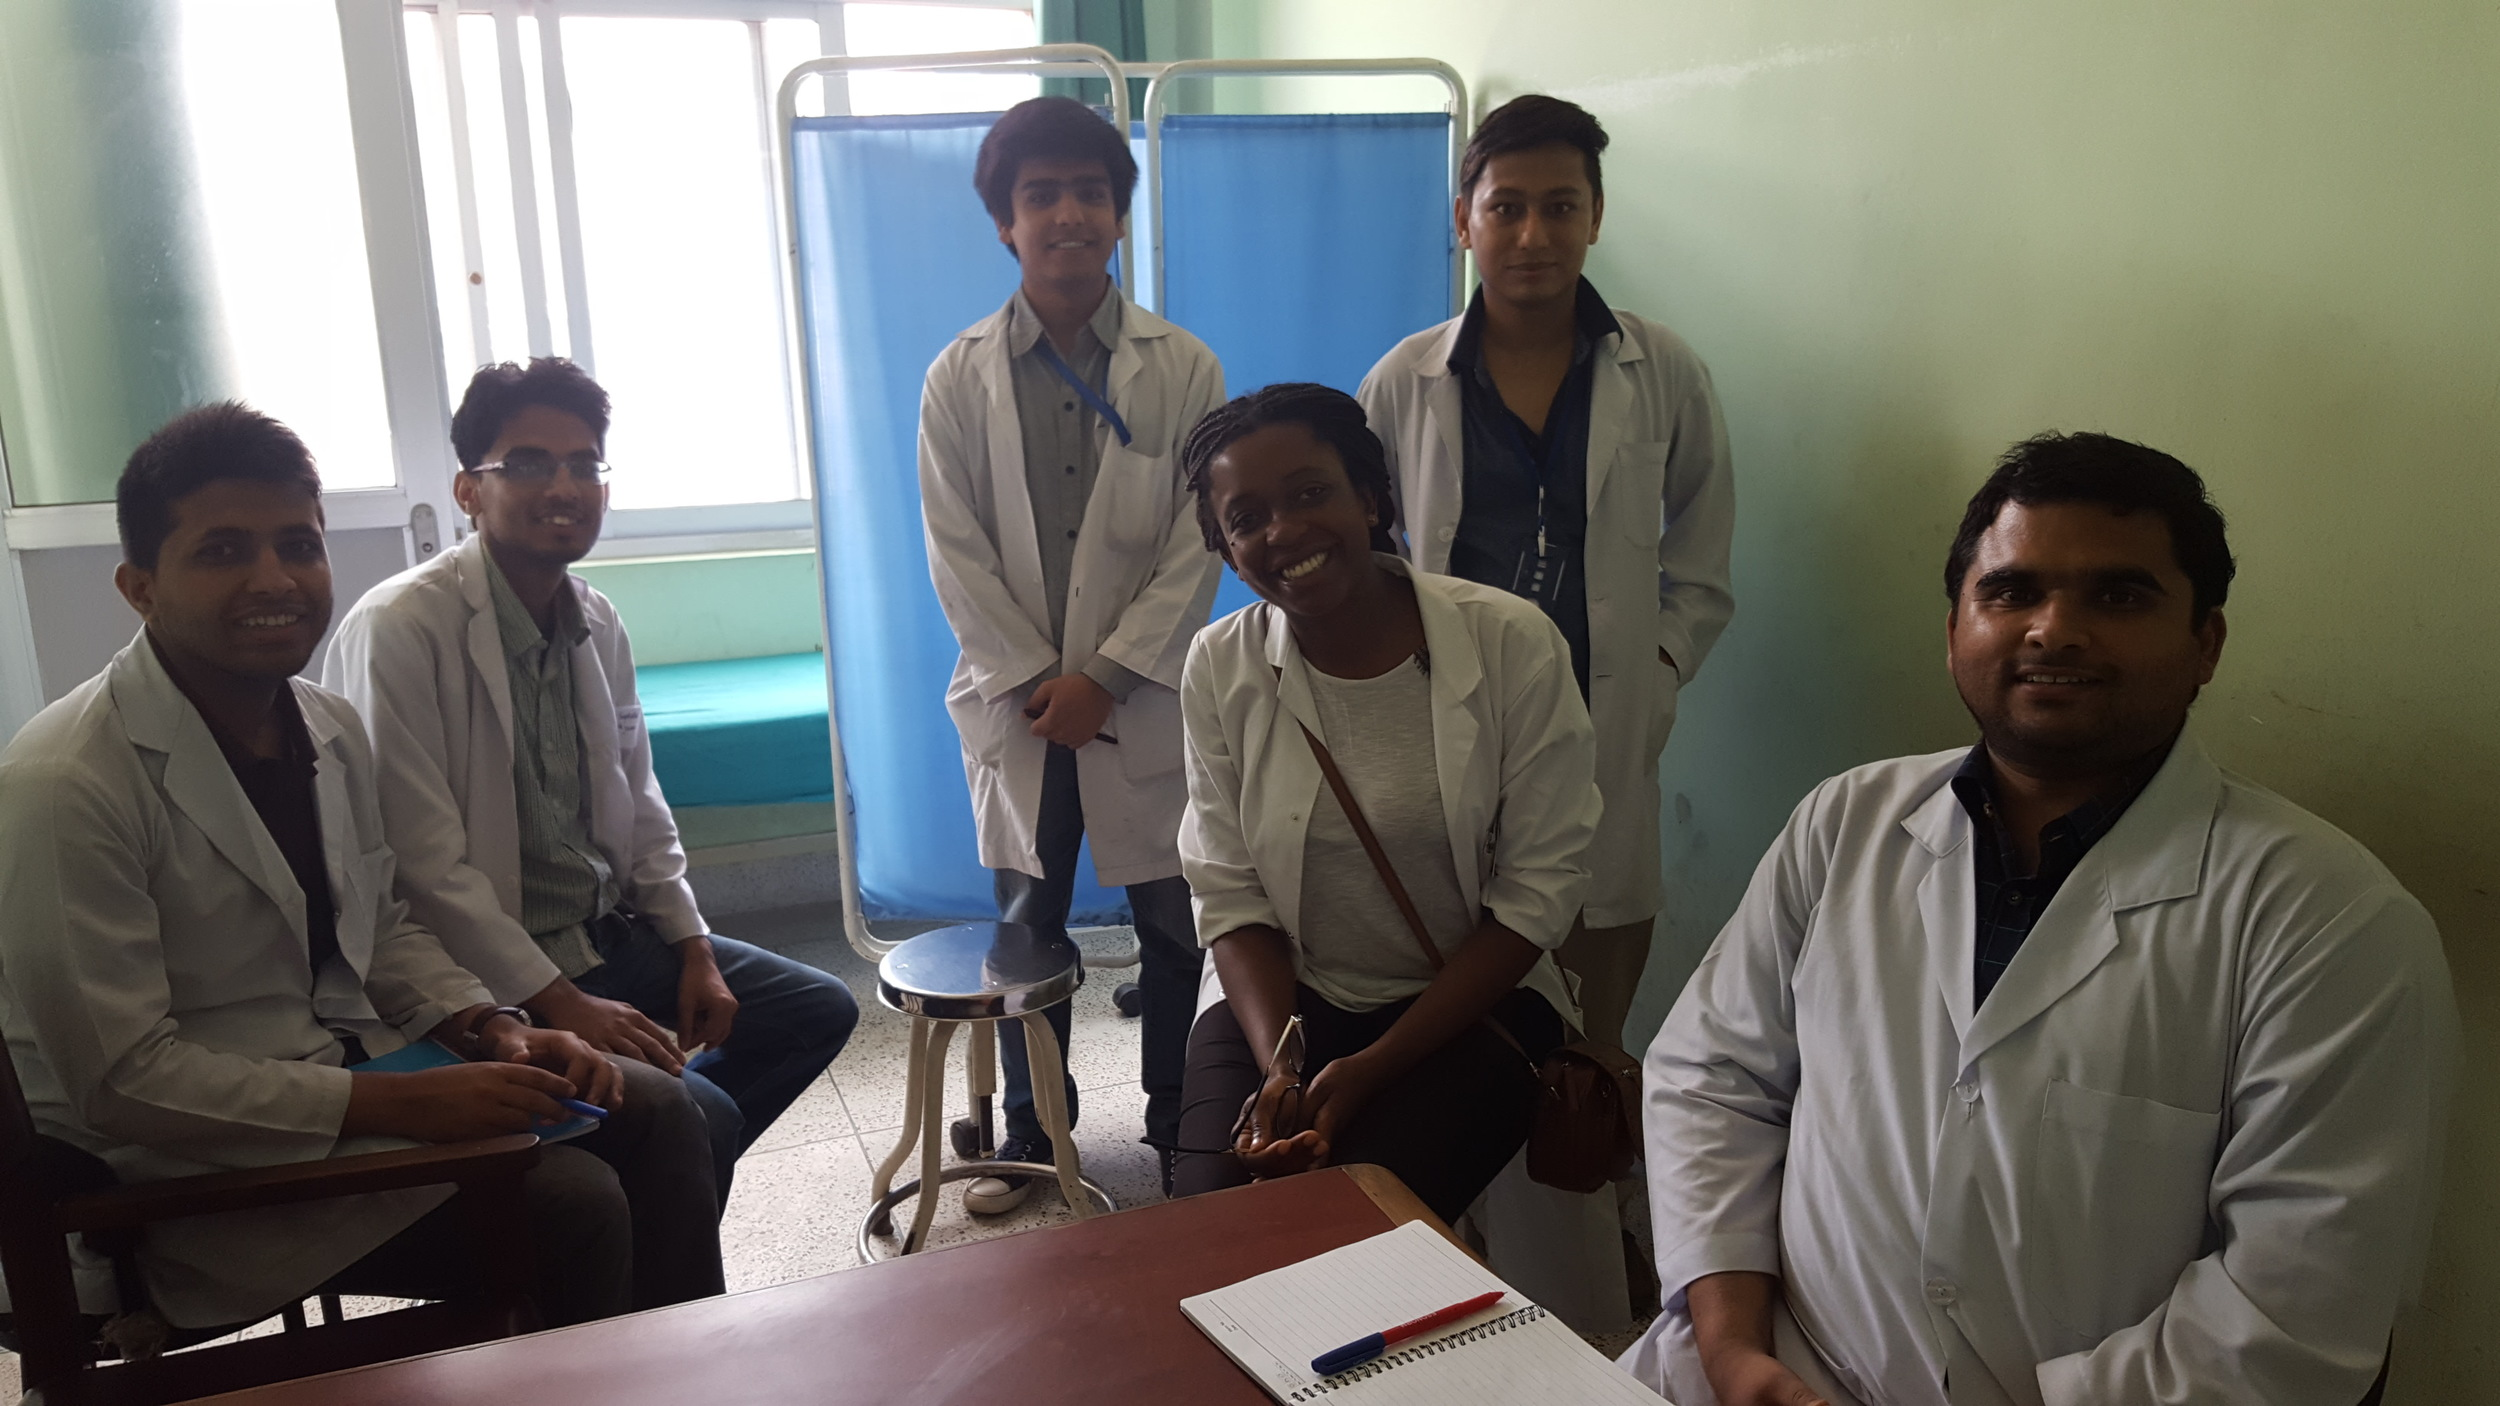 medical elective students surrounded by her supervisor.